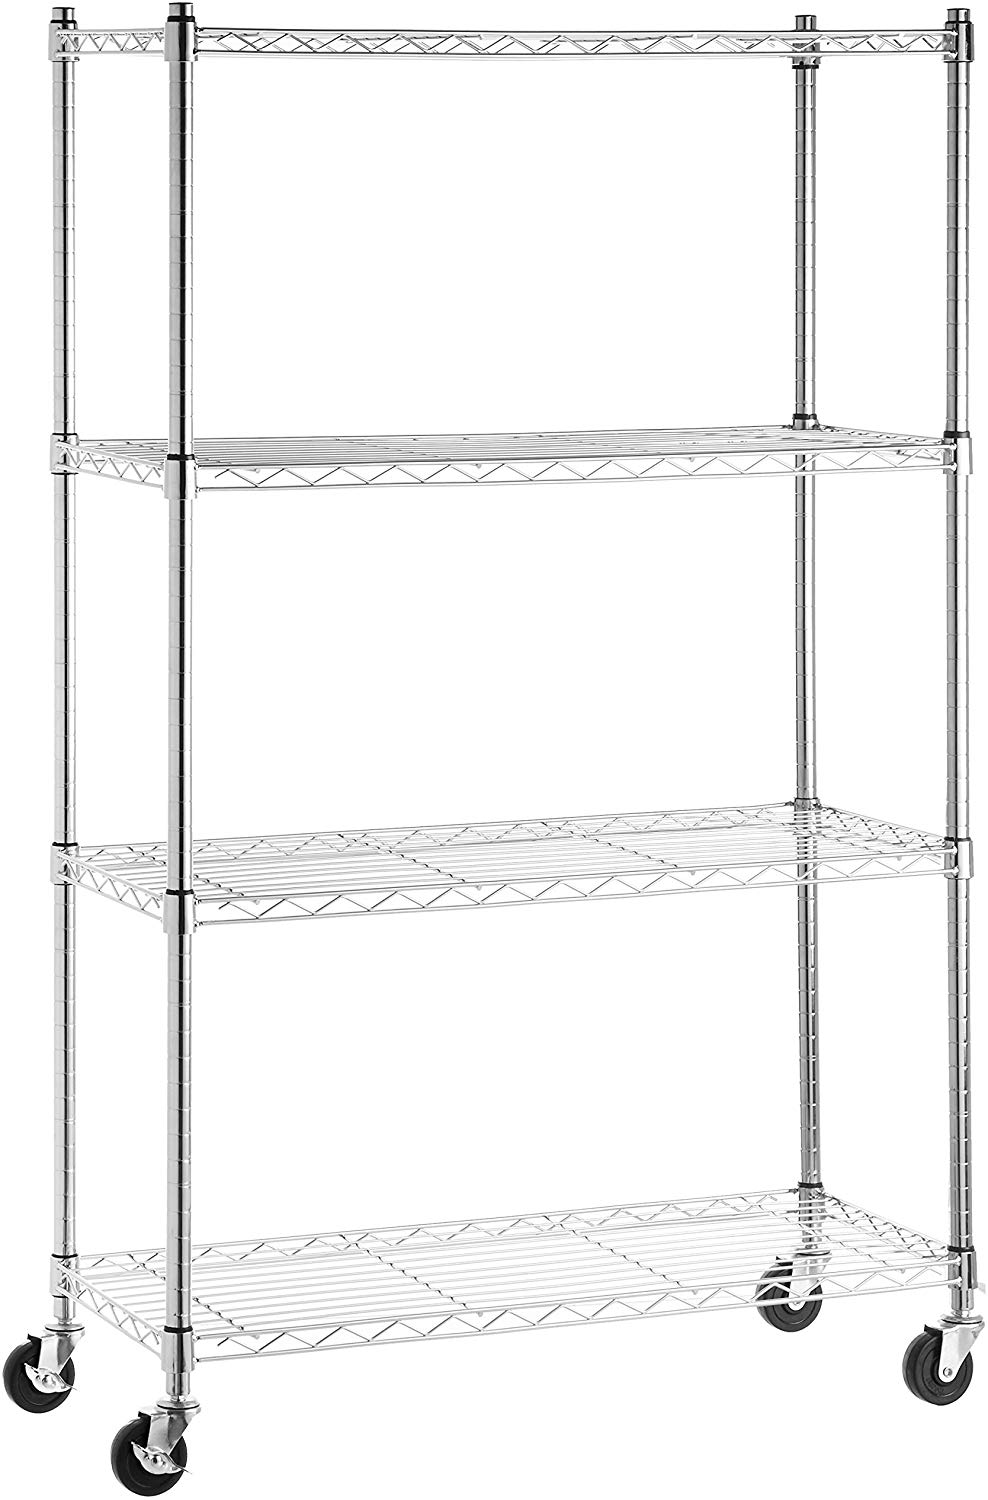 18 x 36 Garage Storage Rack, Black